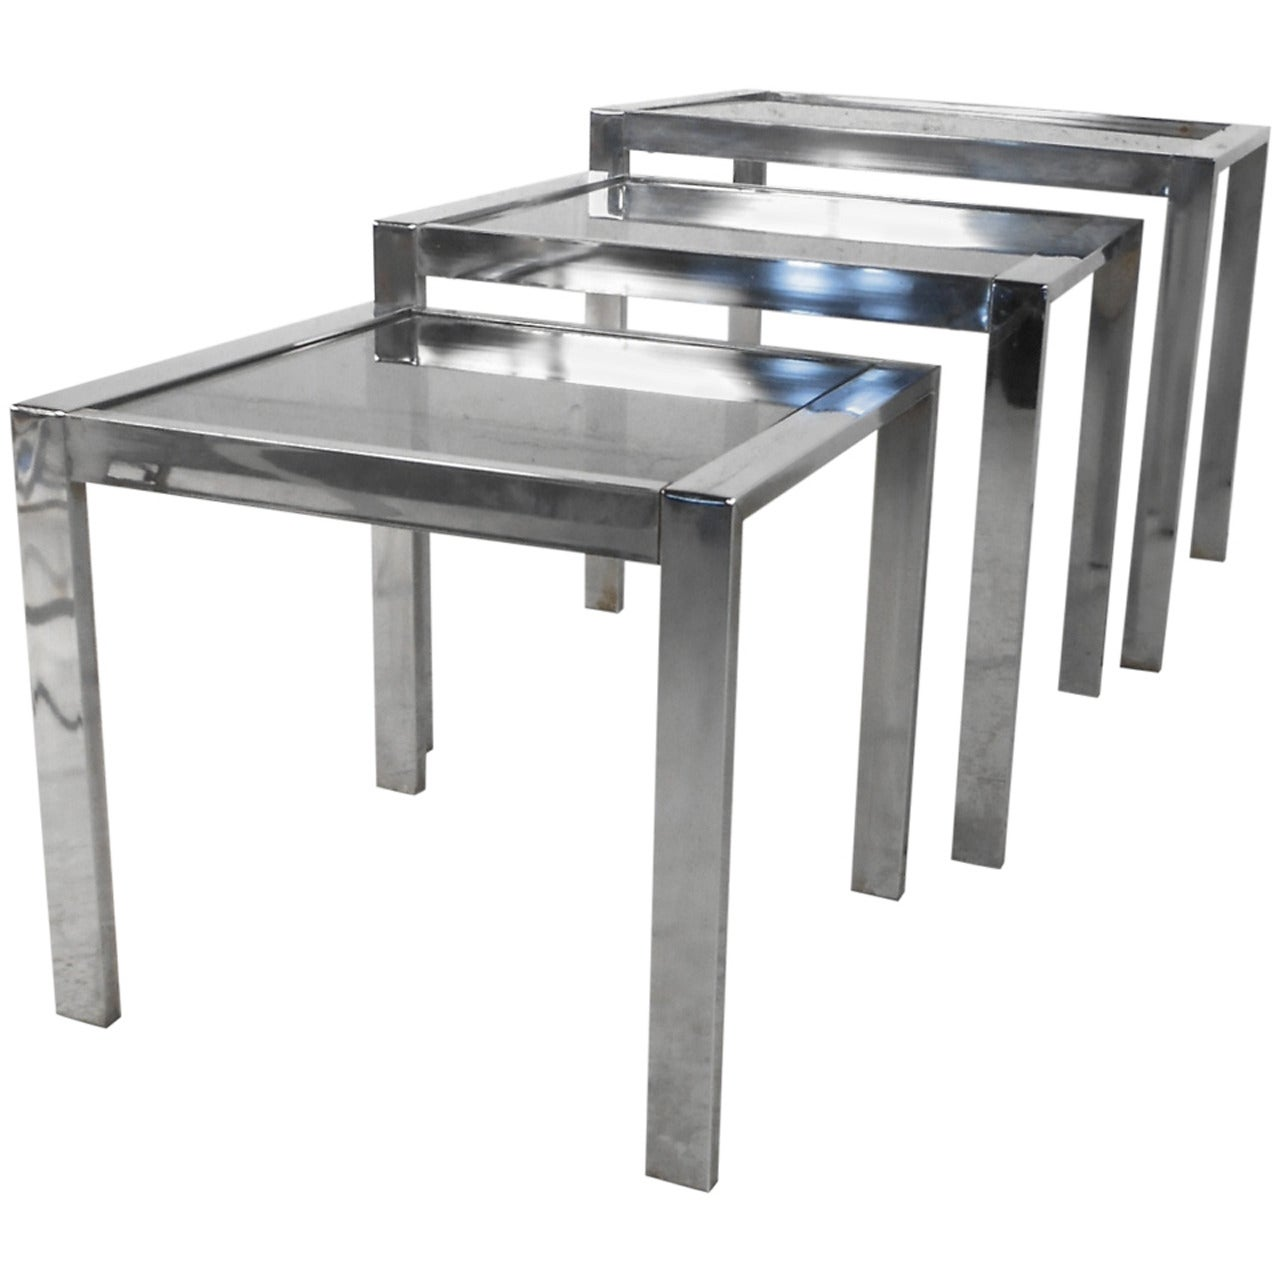 Set of Mid-Century Modern Chrome and Smoked Glass Nesting Tables